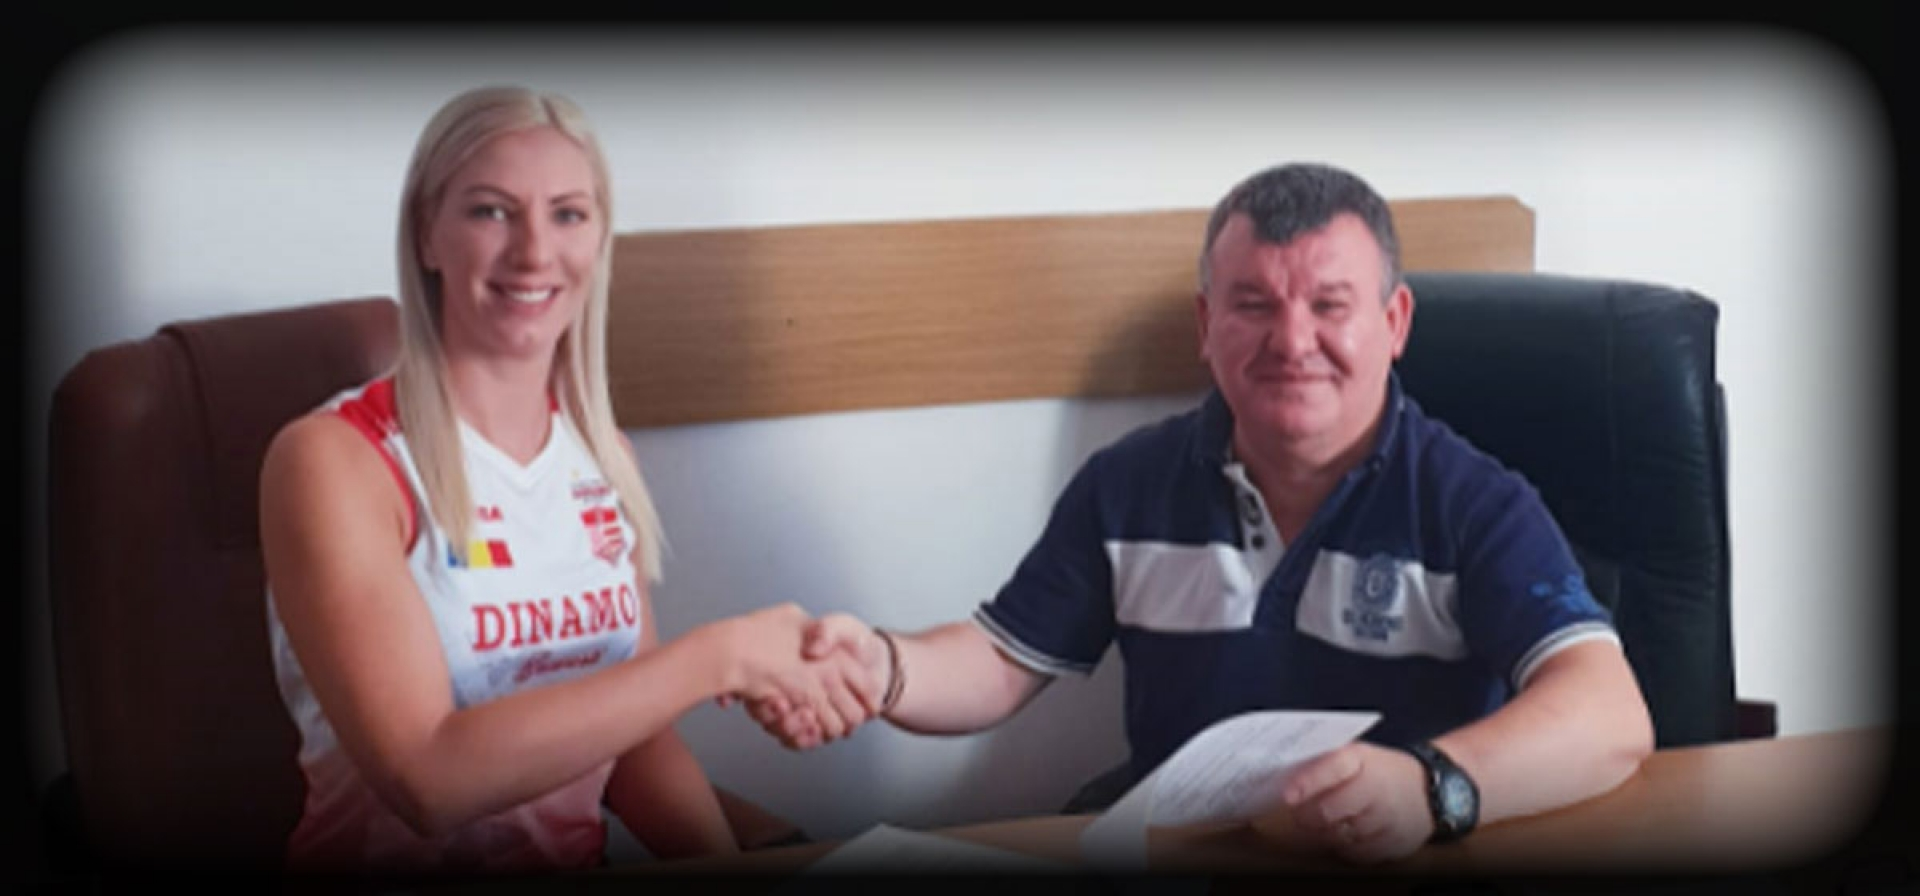 MAJA BURAZER SIGNED WITH DINAMO!